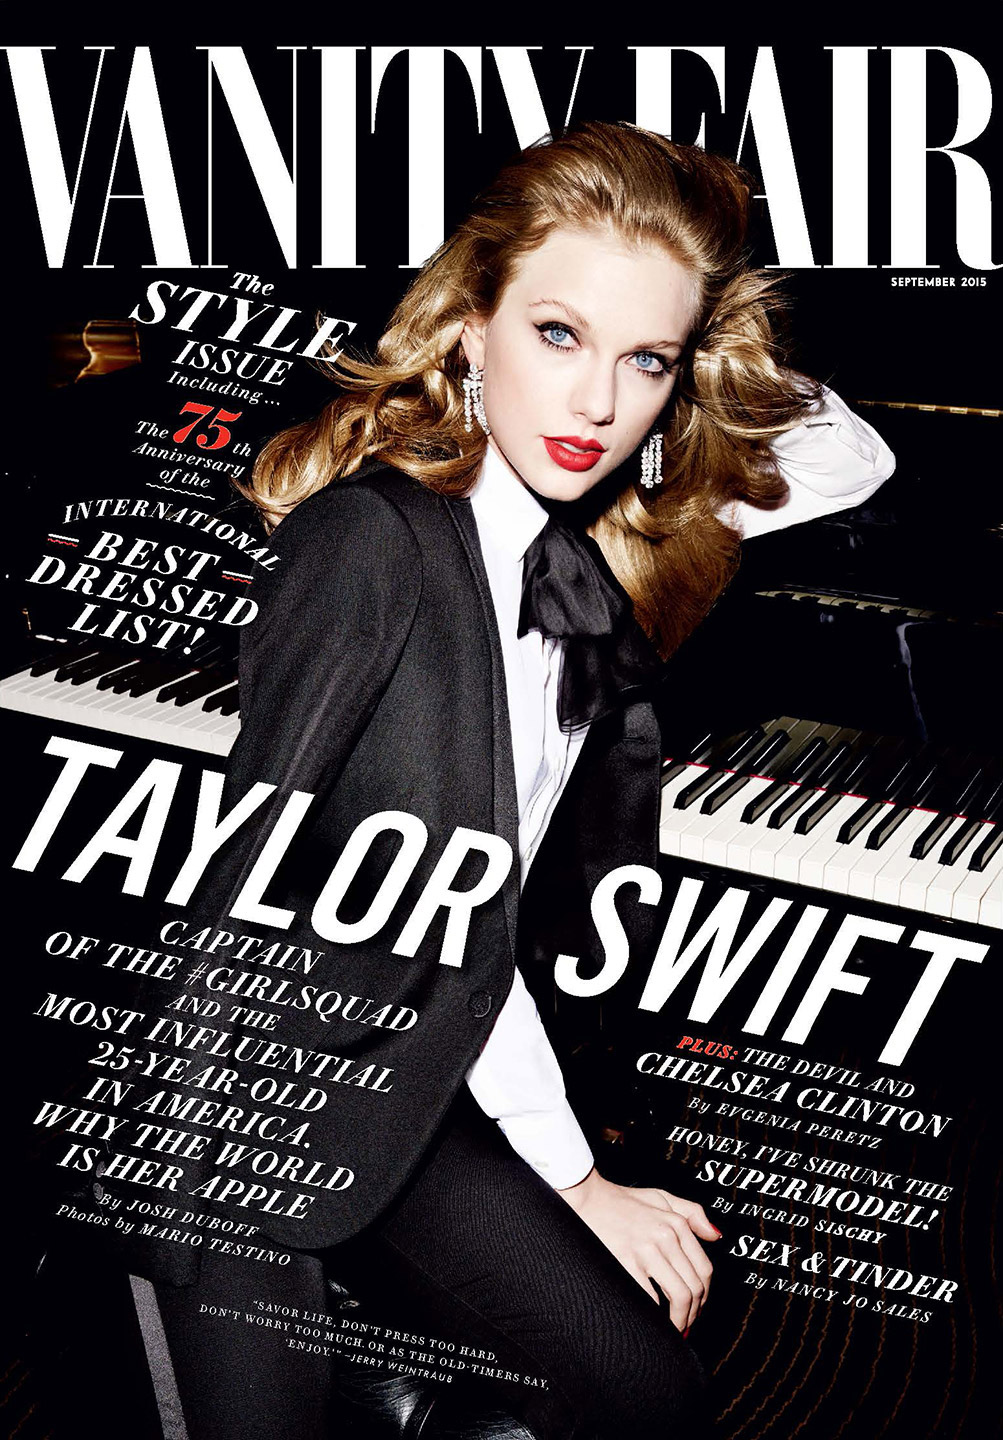 Vanity Fair Cover Spread Dedicated to Taylor Swift and Apple